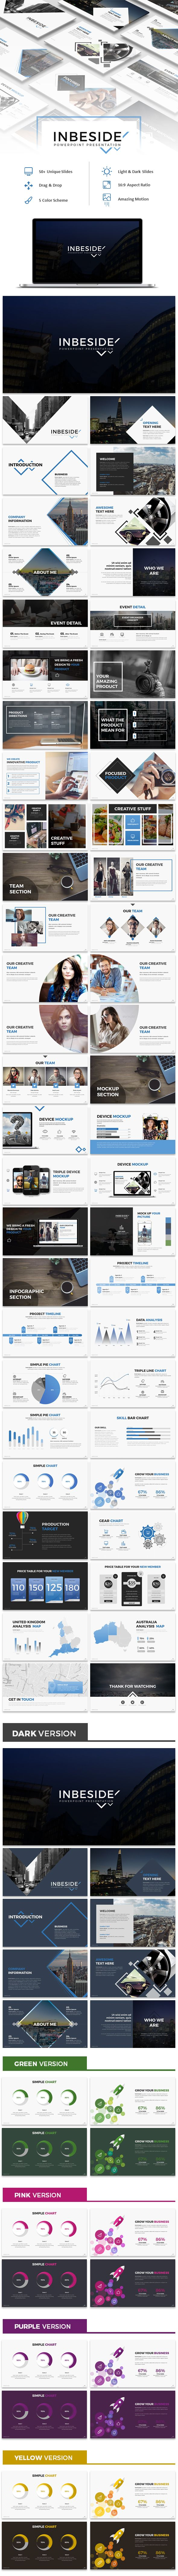 Inbeside Powerpoint Template - Business PowerPoint Templates